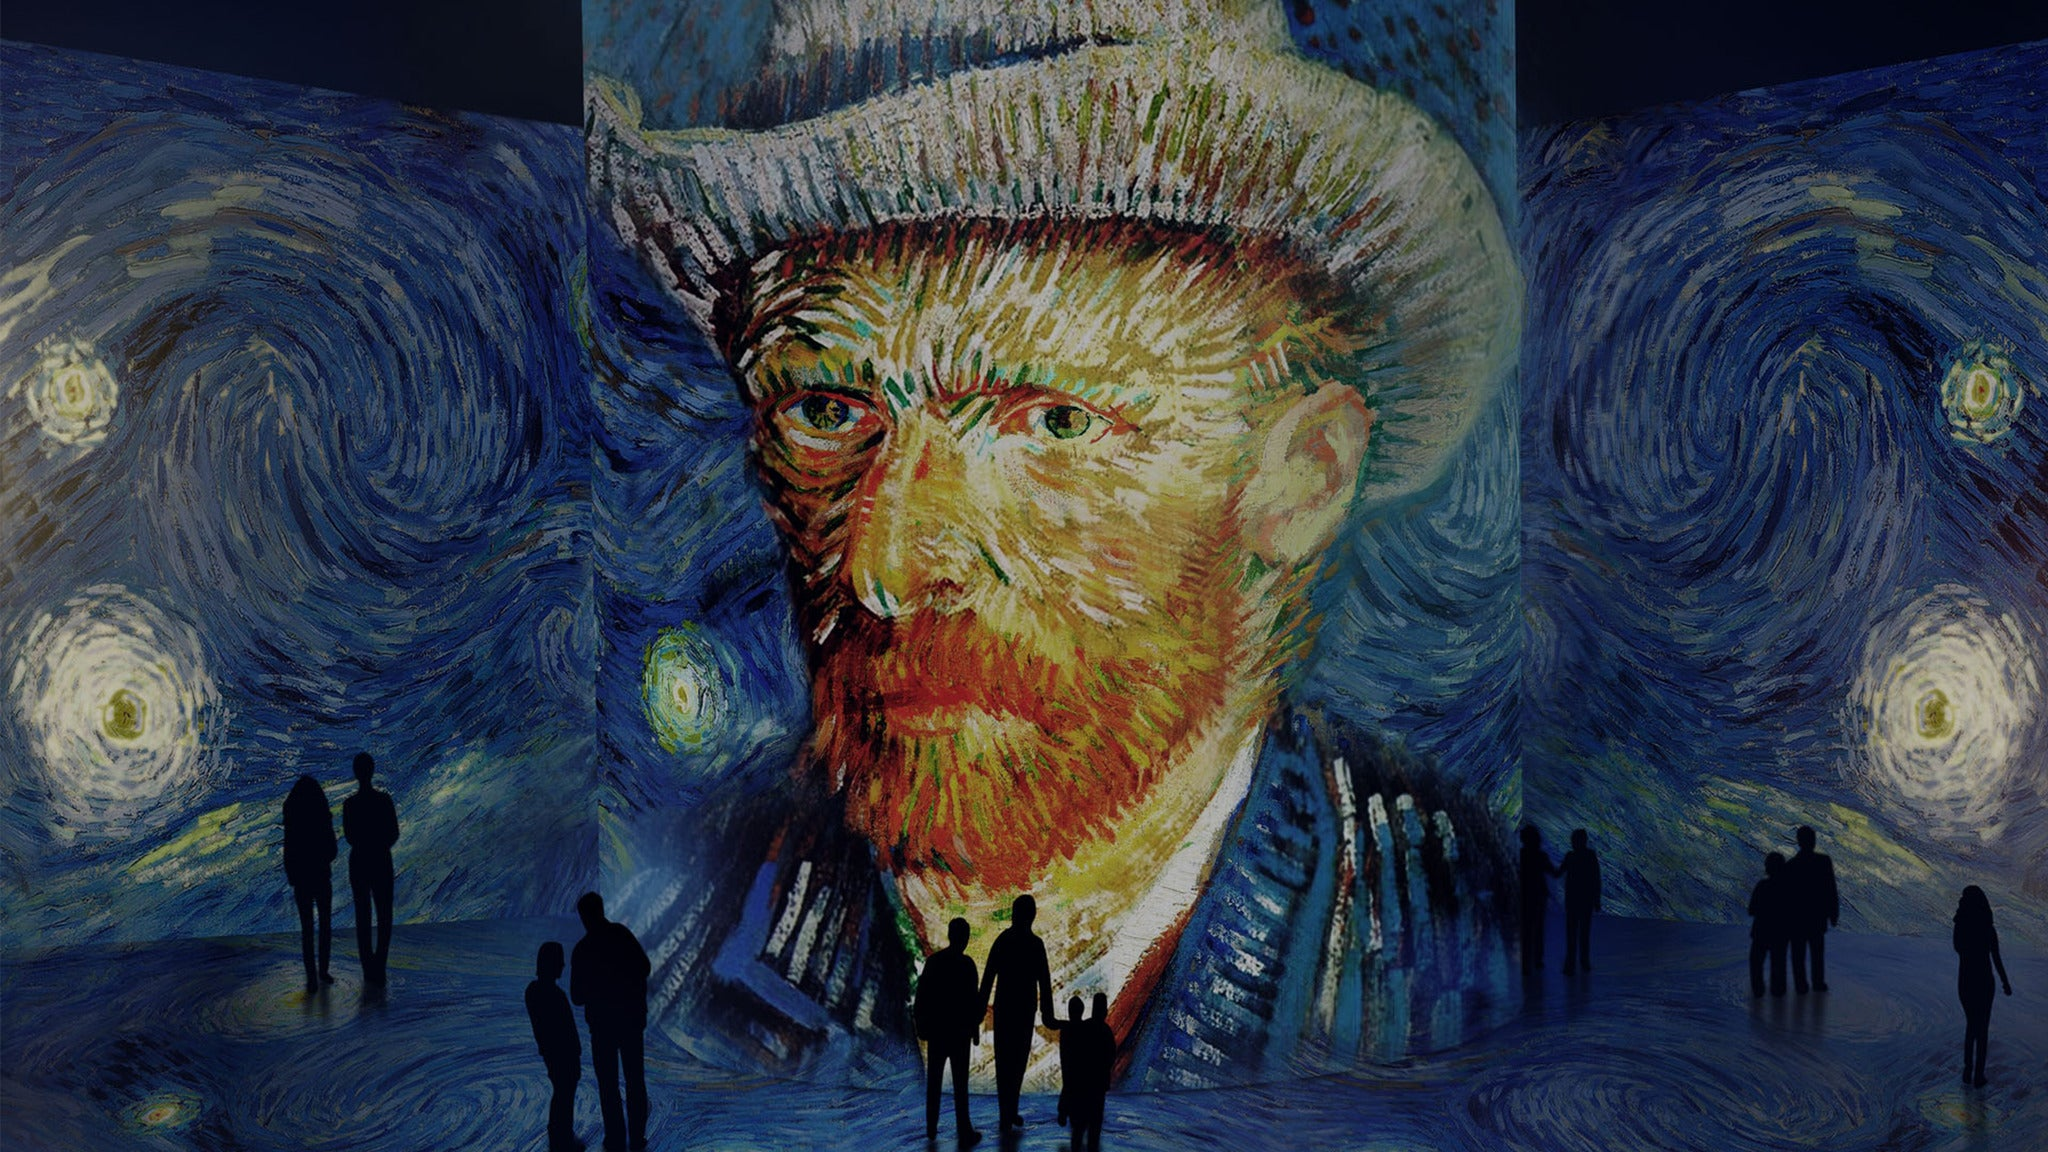 Immersive Van Gogh (Off-Peak) at SVN West San Francisco - San Francisco, CA 94103